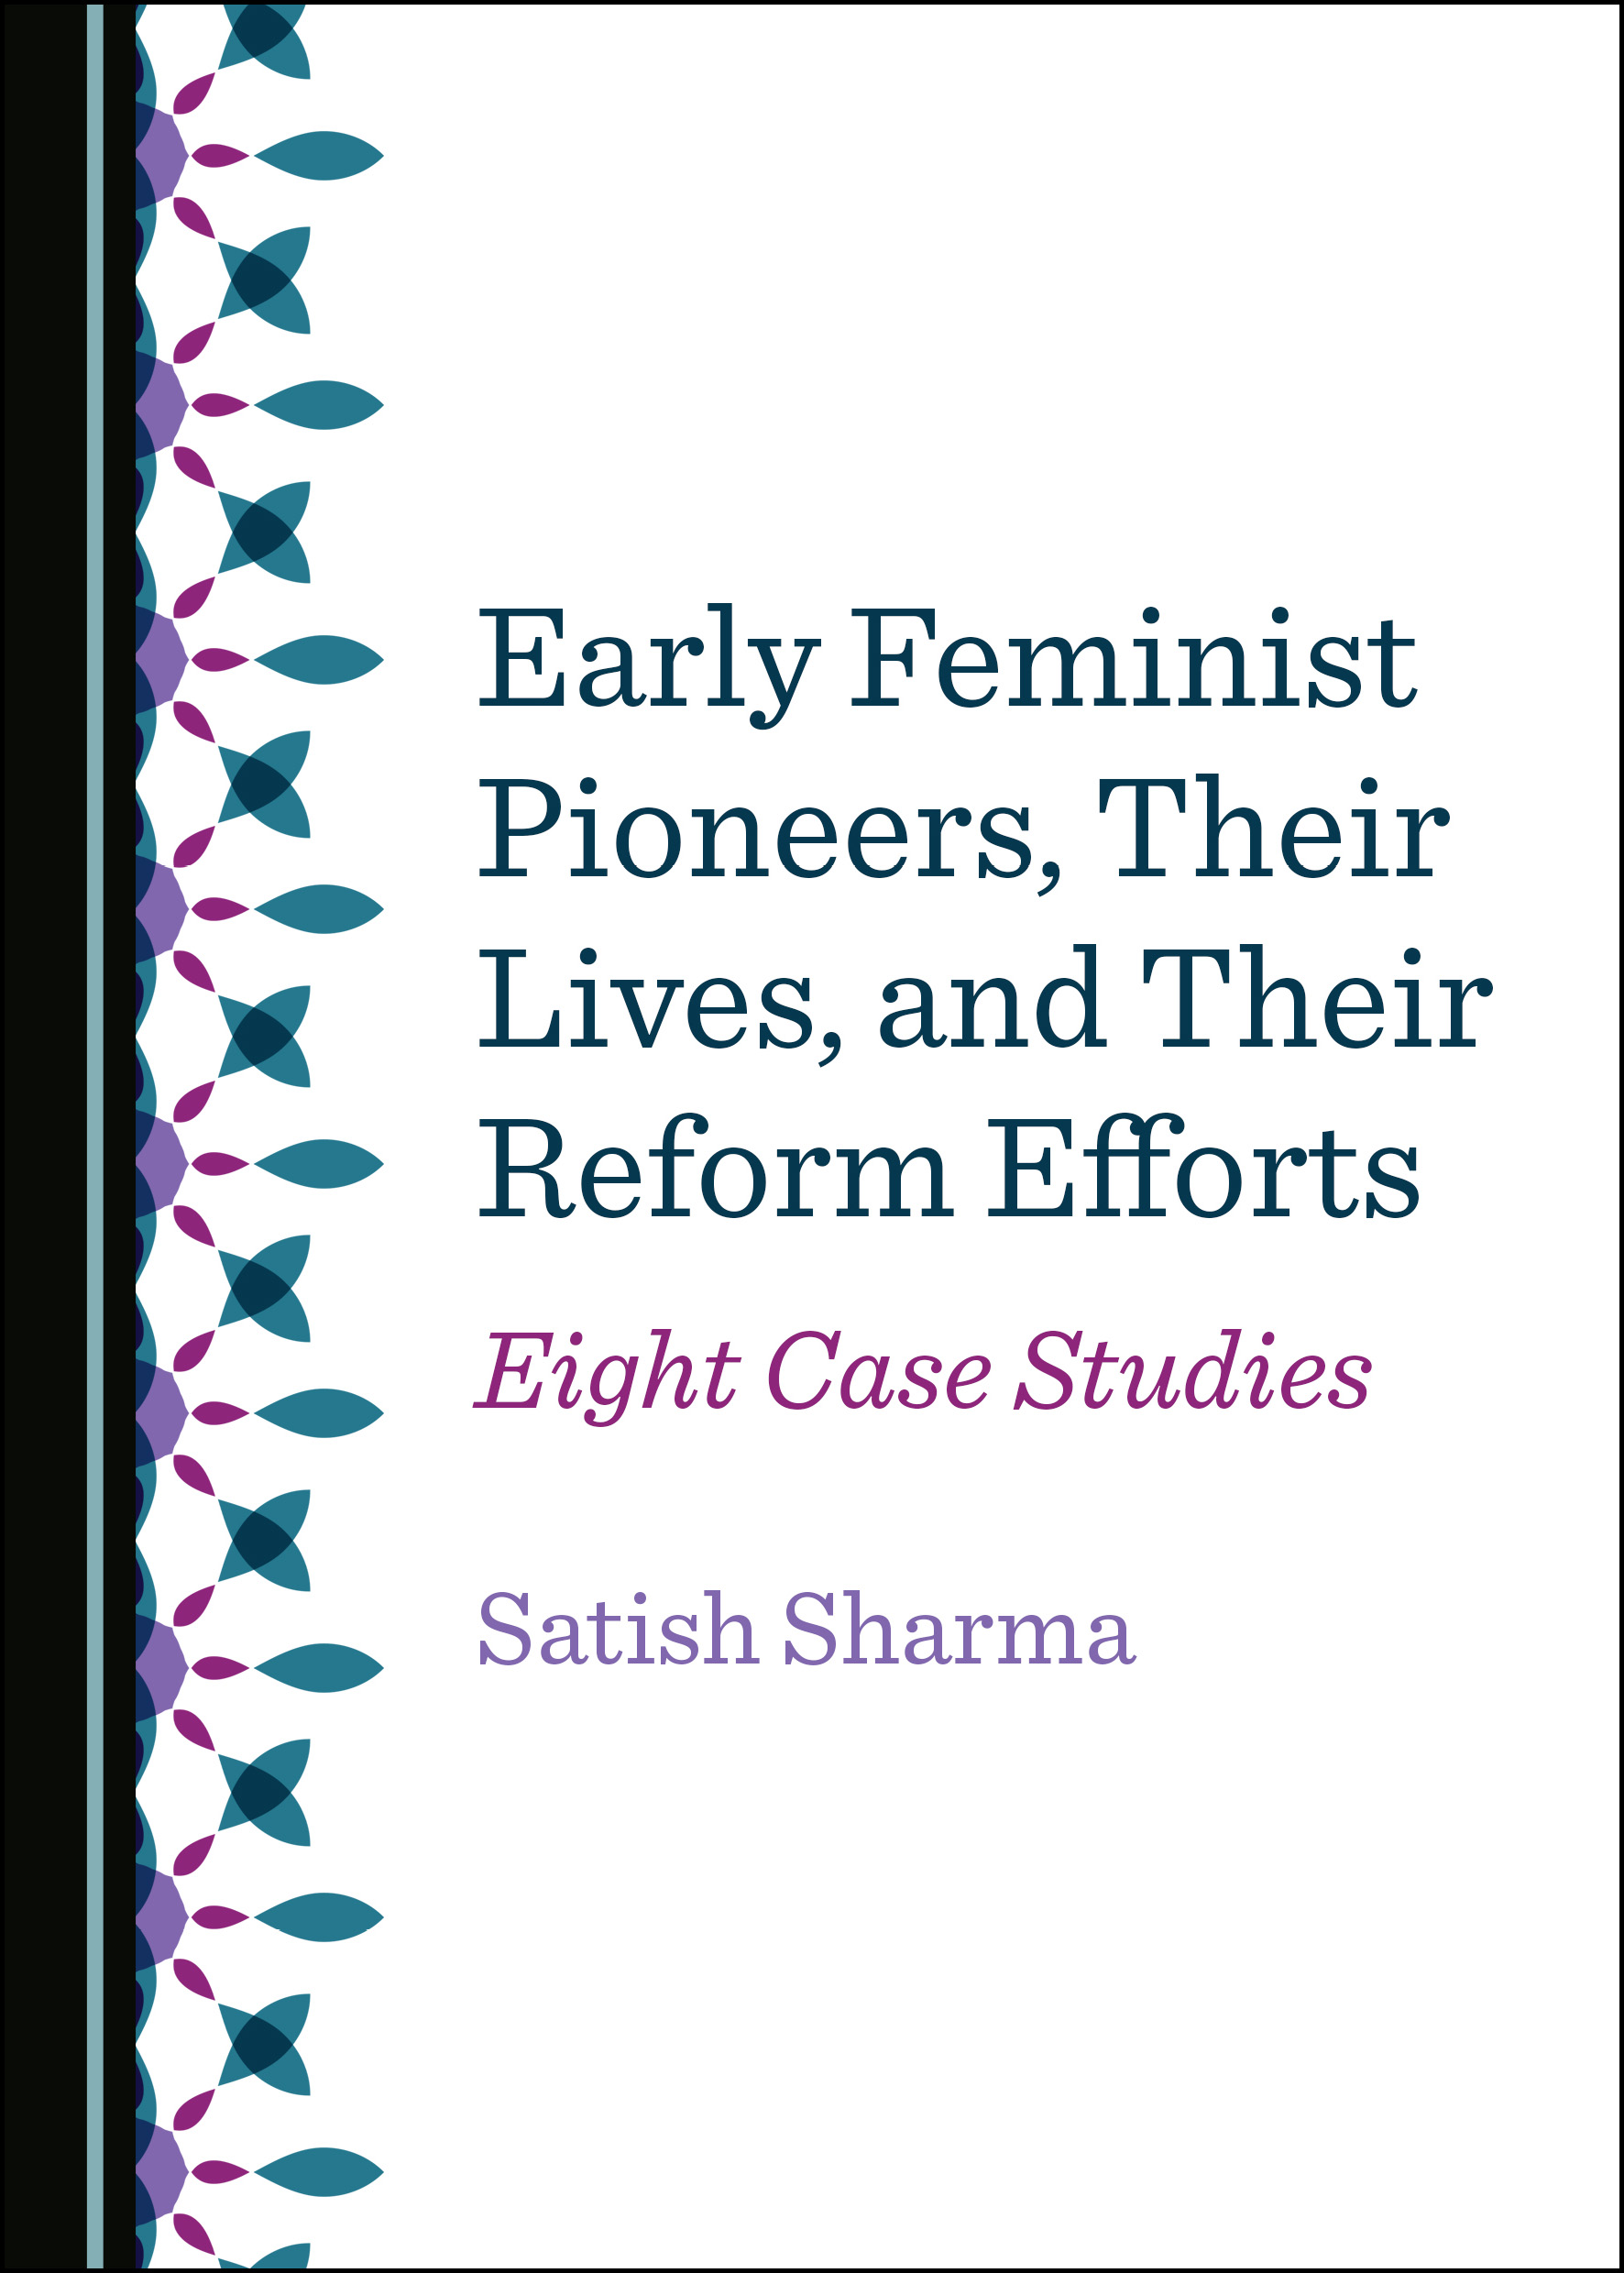 Early Feminist Pioneers, Their Lives, and Their Reform Efforts: Eight Case Studies